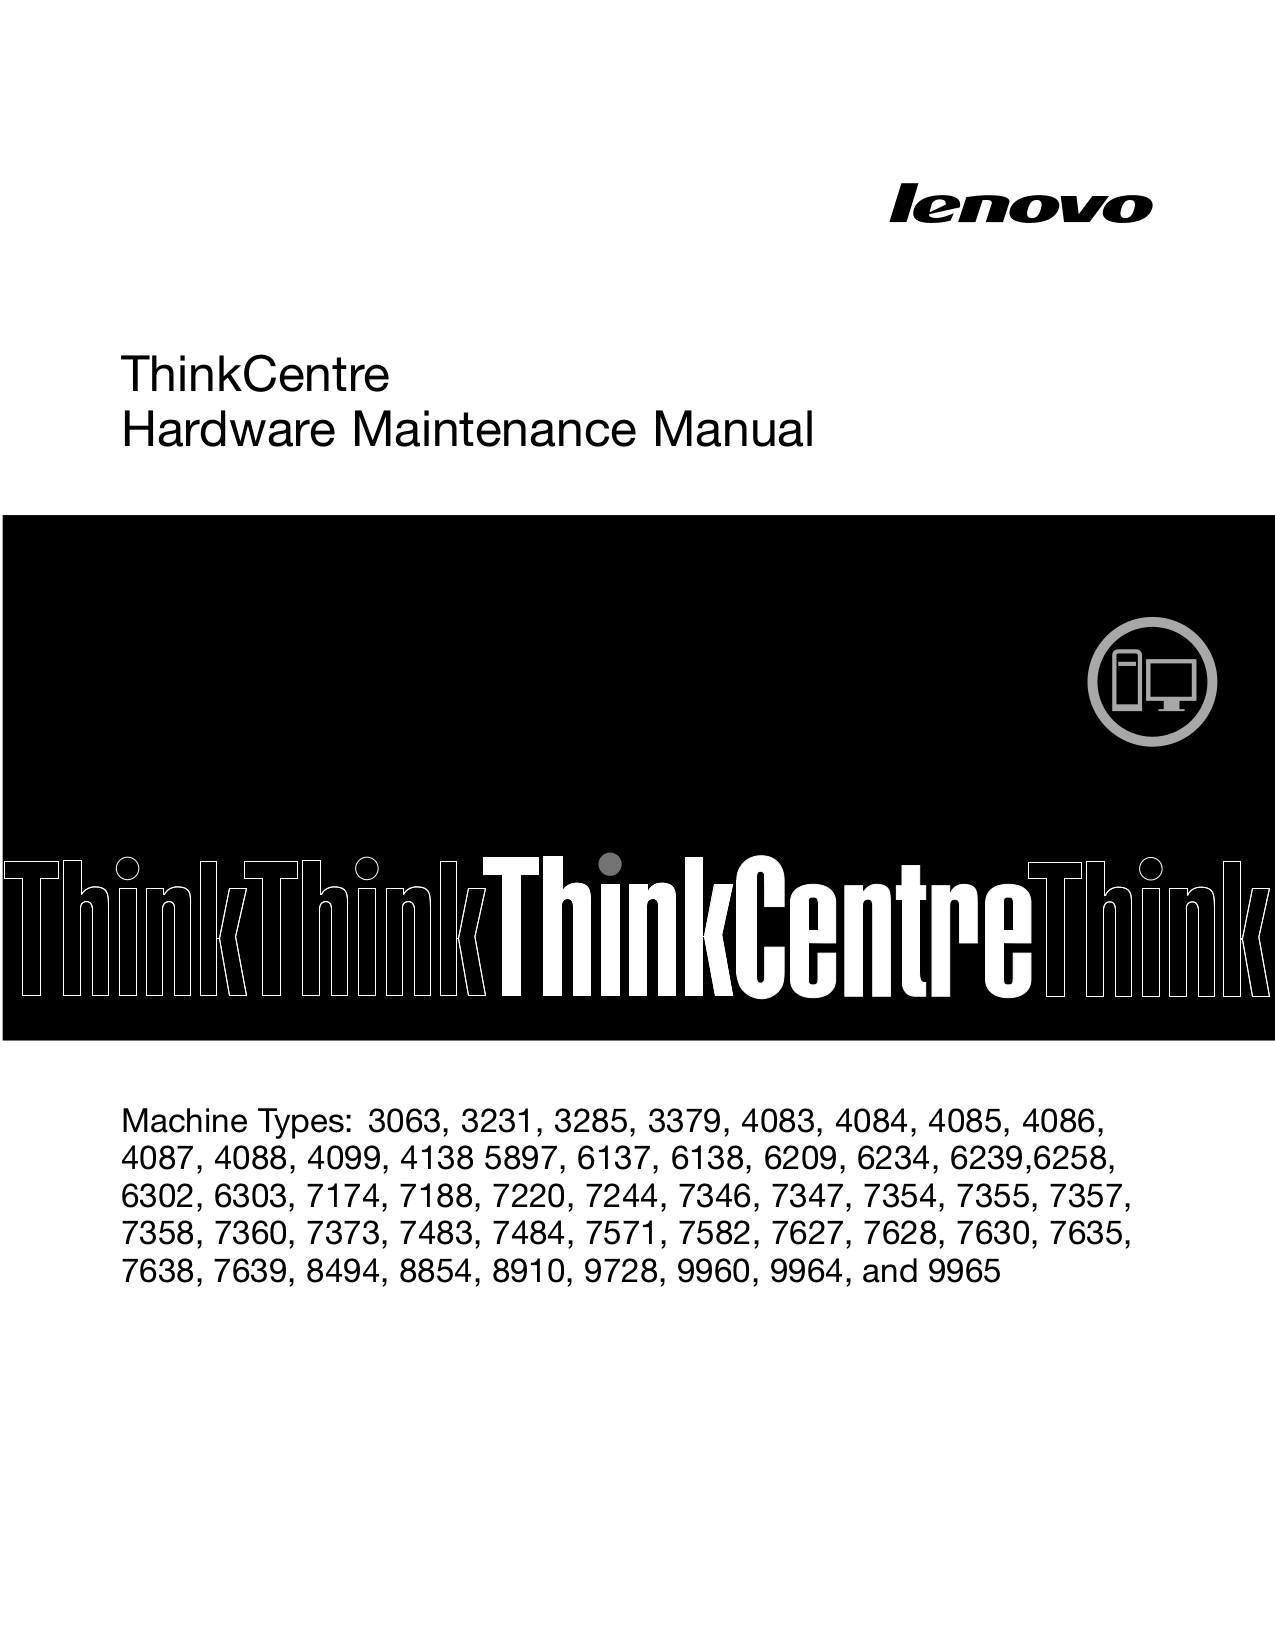 pdf for Lenovo Desktop ThinkCentre M58 7627 manual